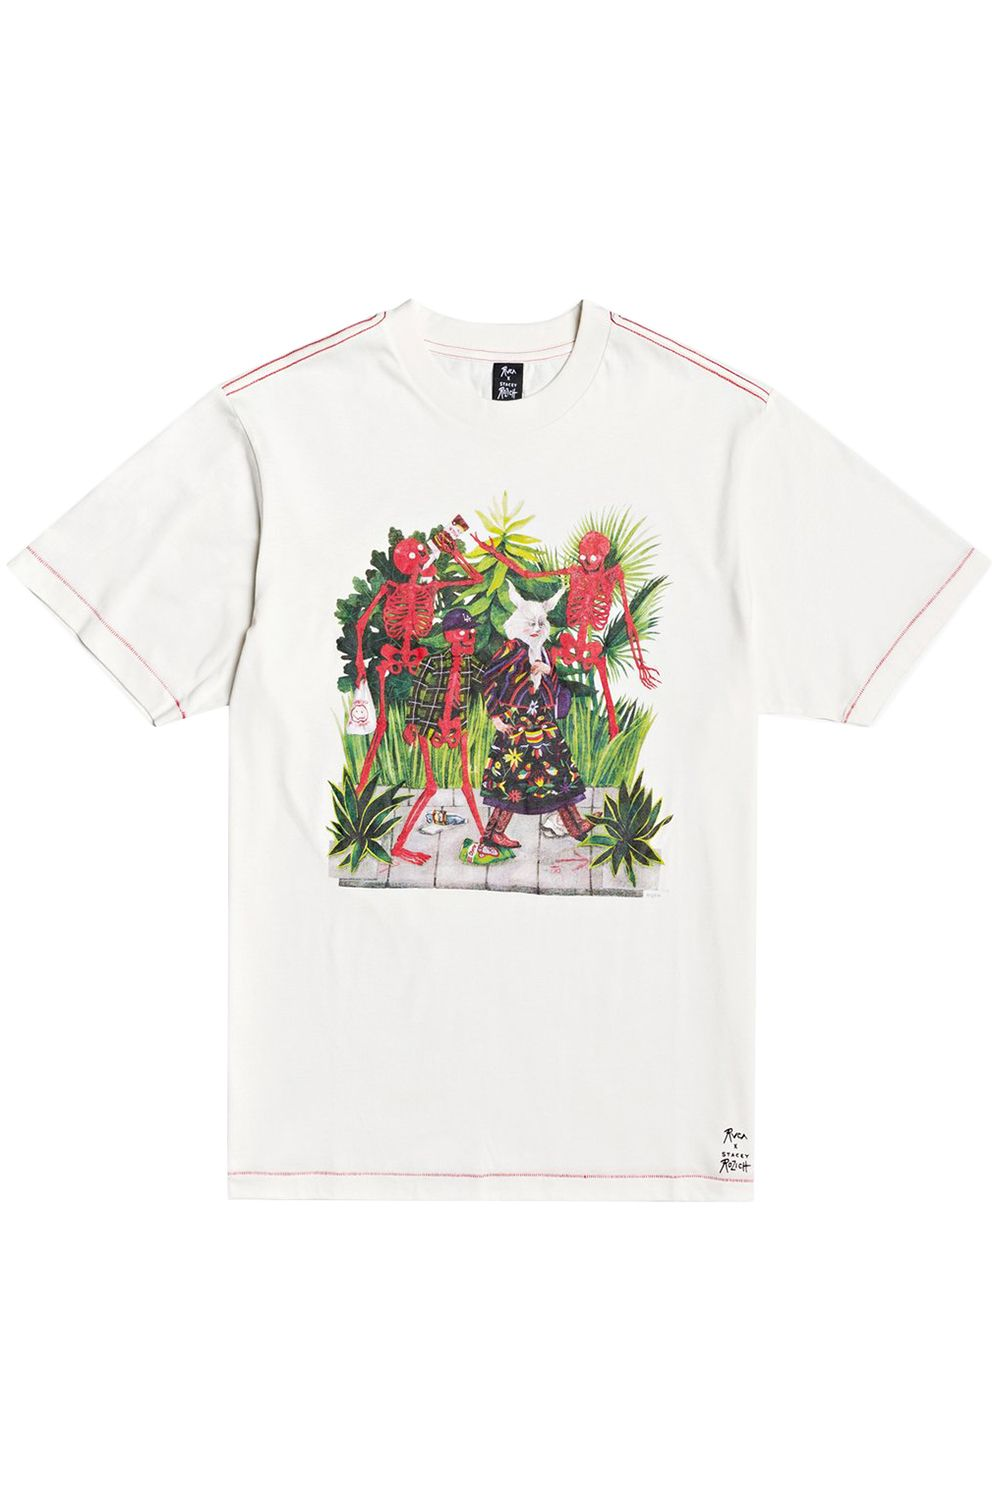 T-Shirt RVCA BONE BOYS SS TEE STACEY ROZICH Antique White